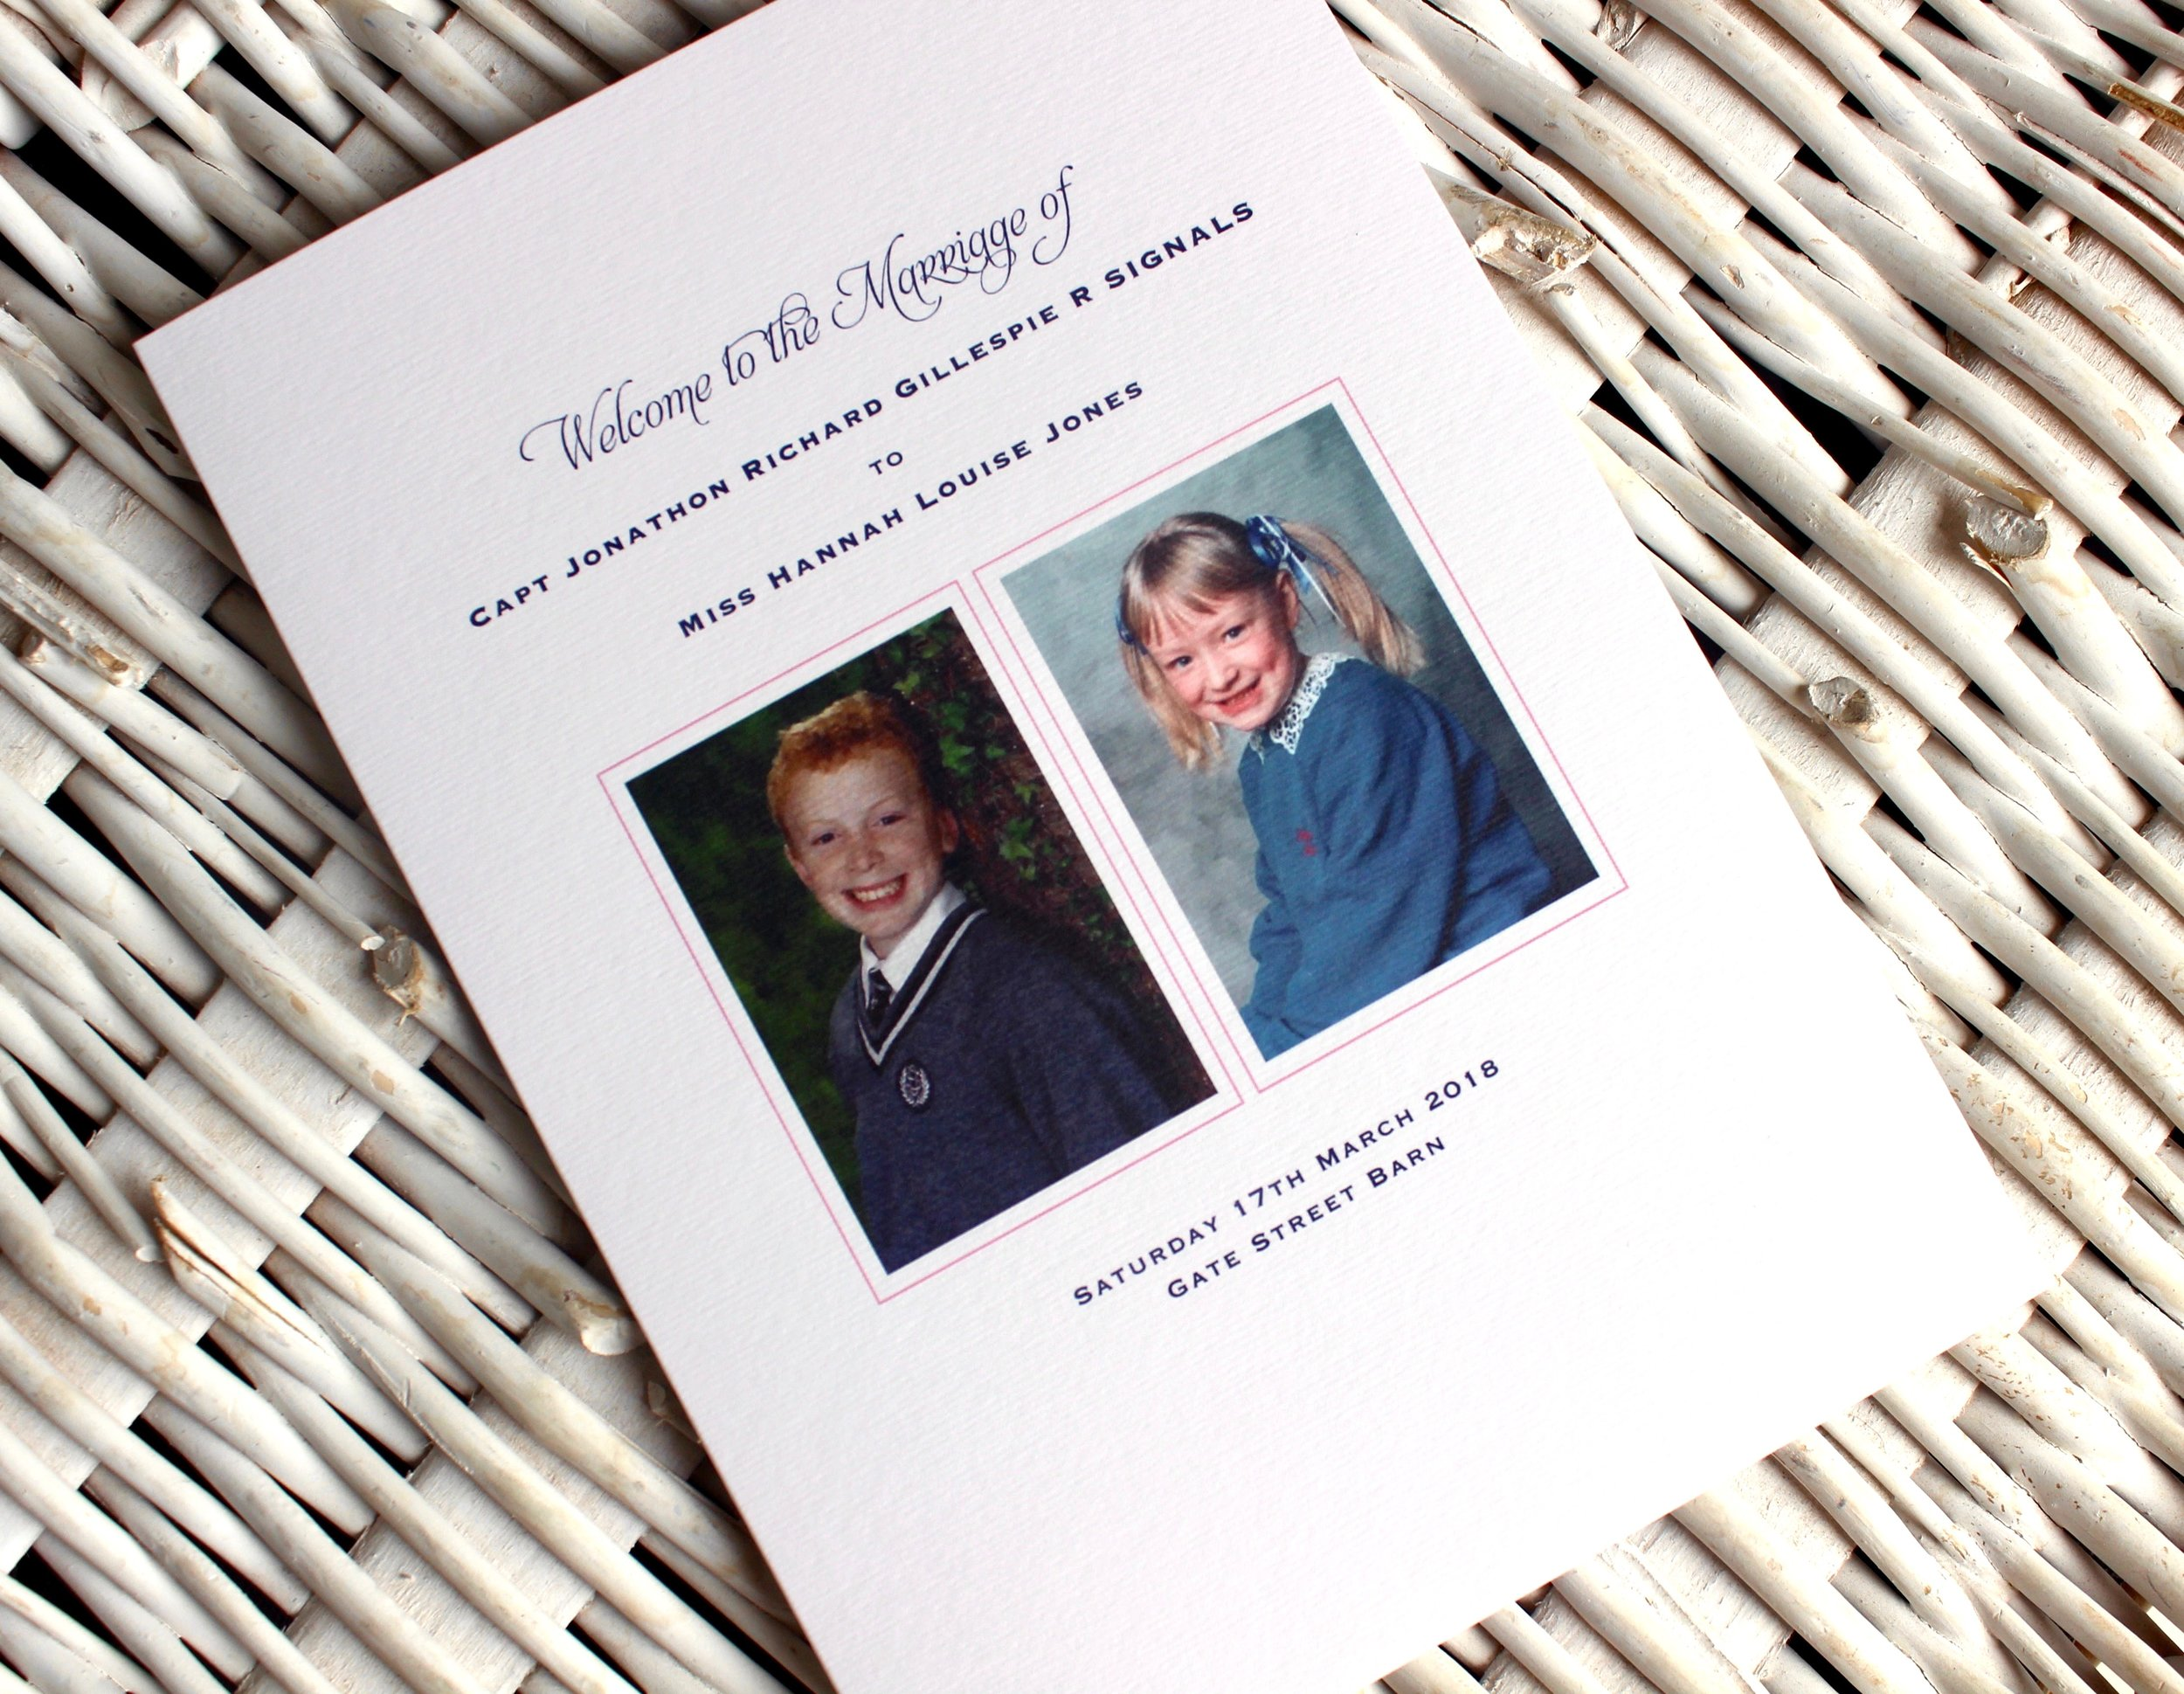 Decorative Order of Service Booklet